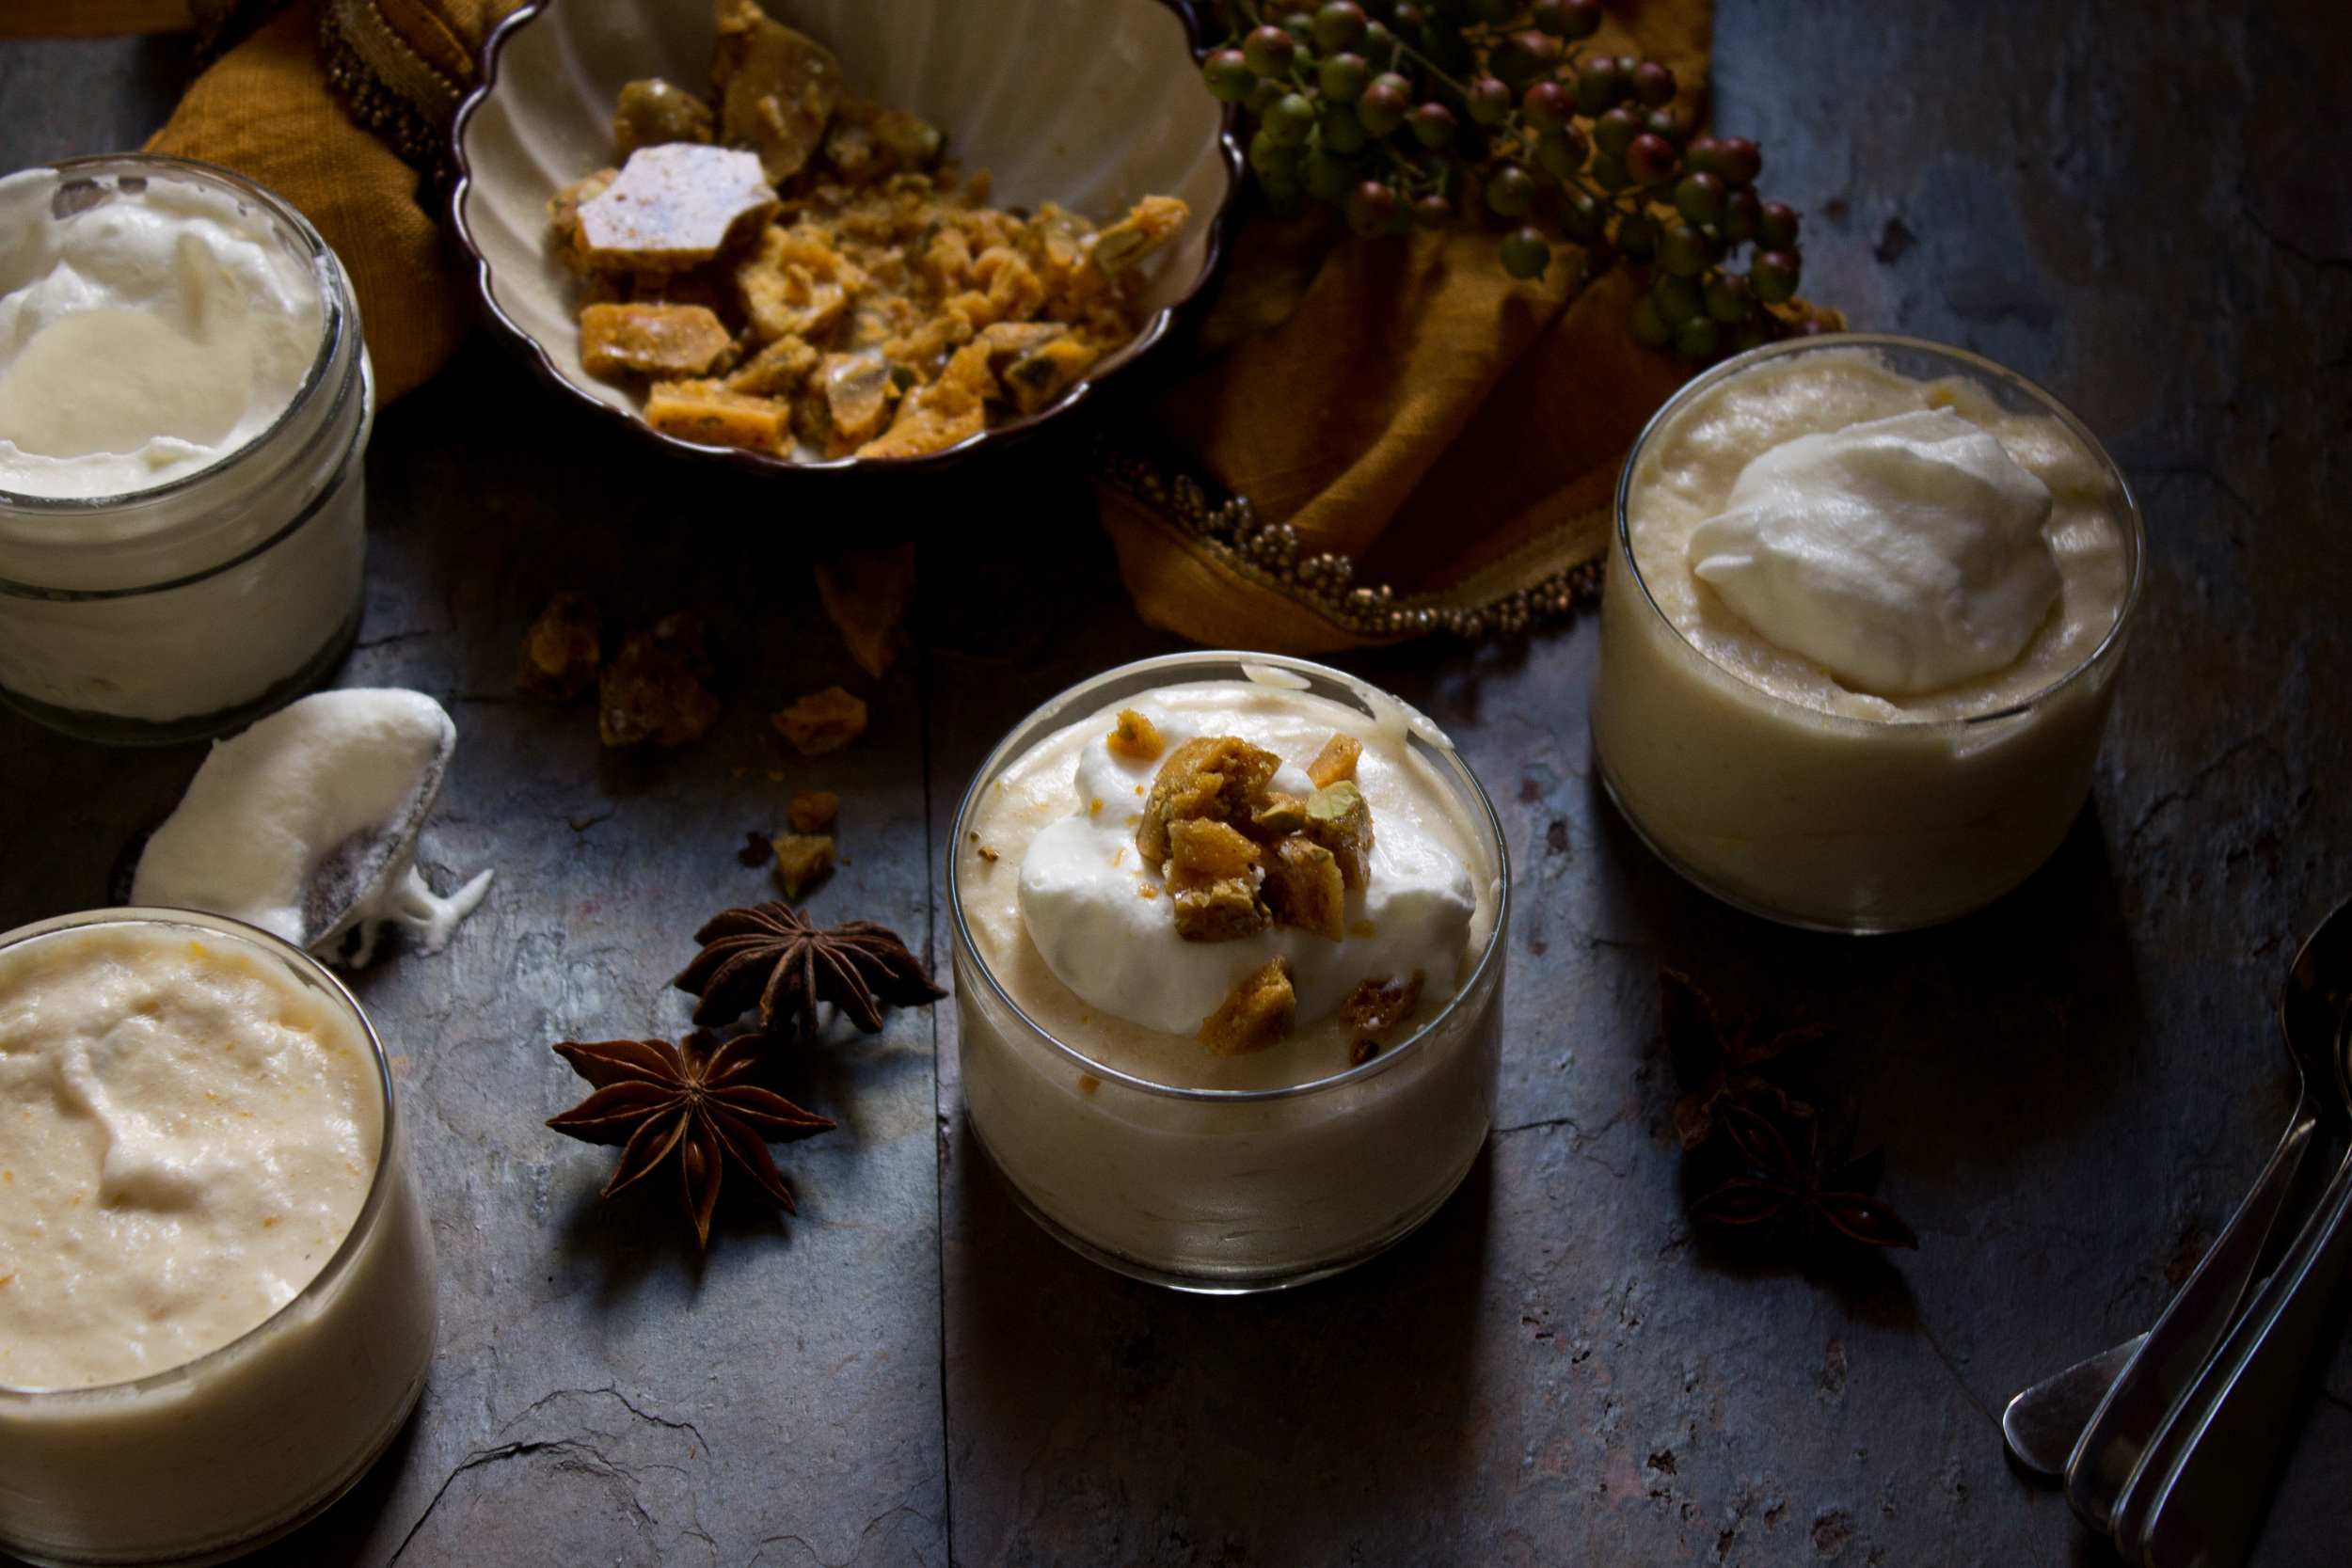 Maple and Anise Mousse with Salted Pistachio Brittle {Pedantic Foodie}